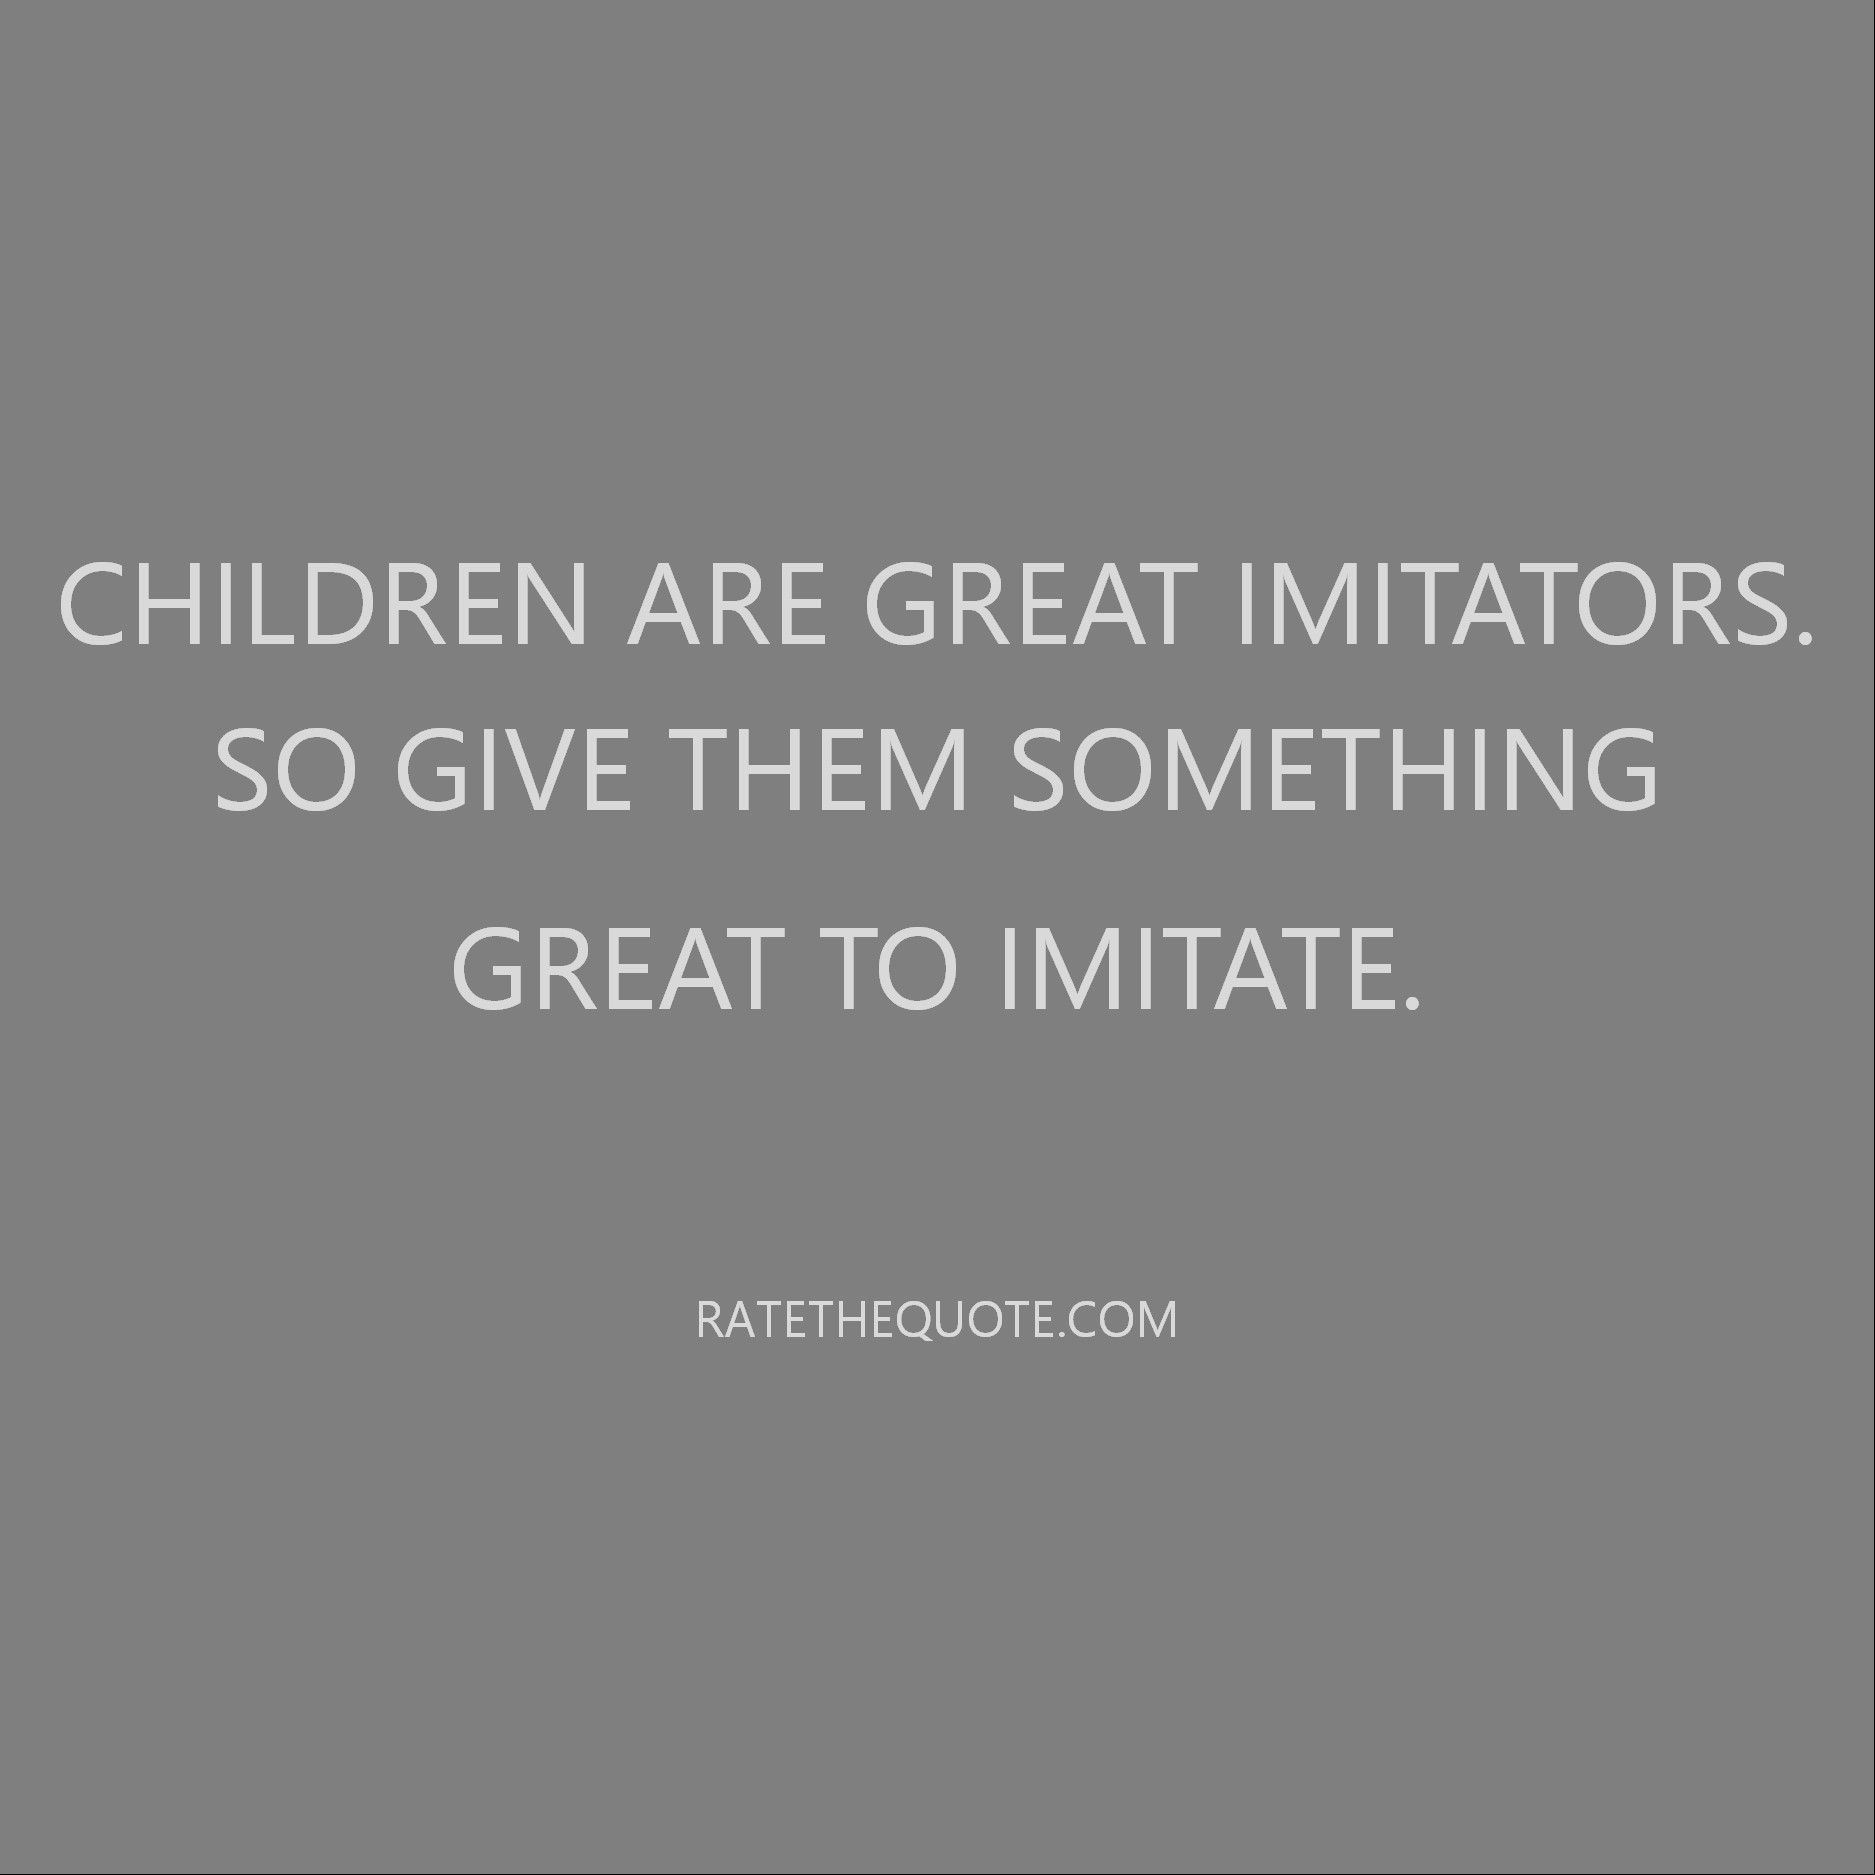 Children are great imitators. So give them something great to imitate.